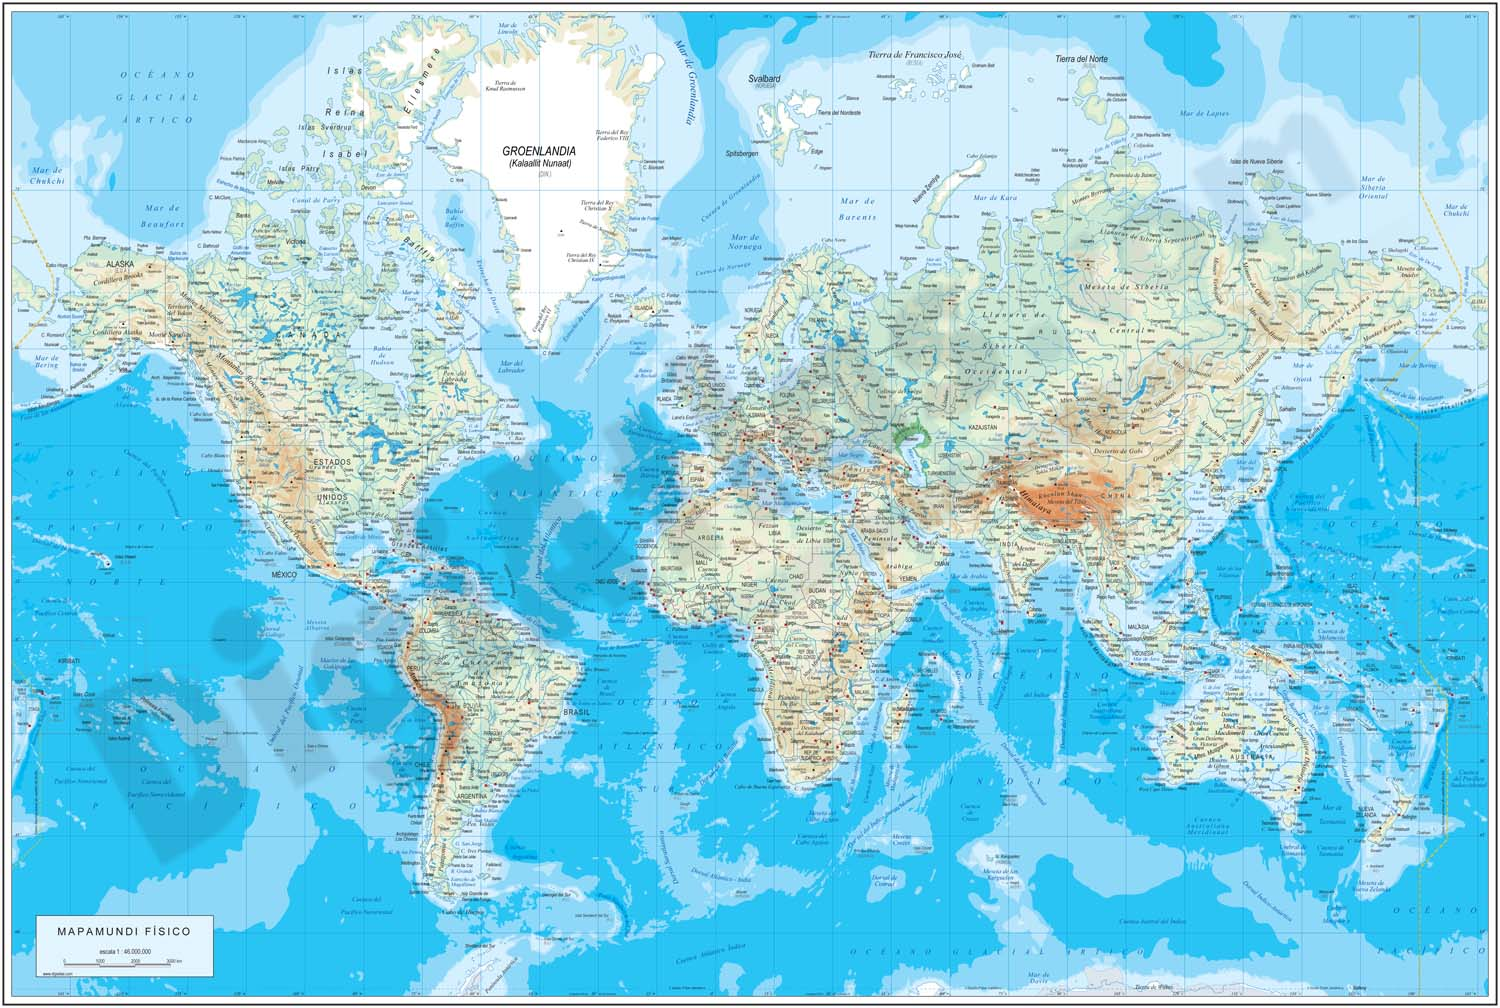 Digital cartography maps ans plans enlarge view physical poster worldmap vector file gumiabroncs Choice Image